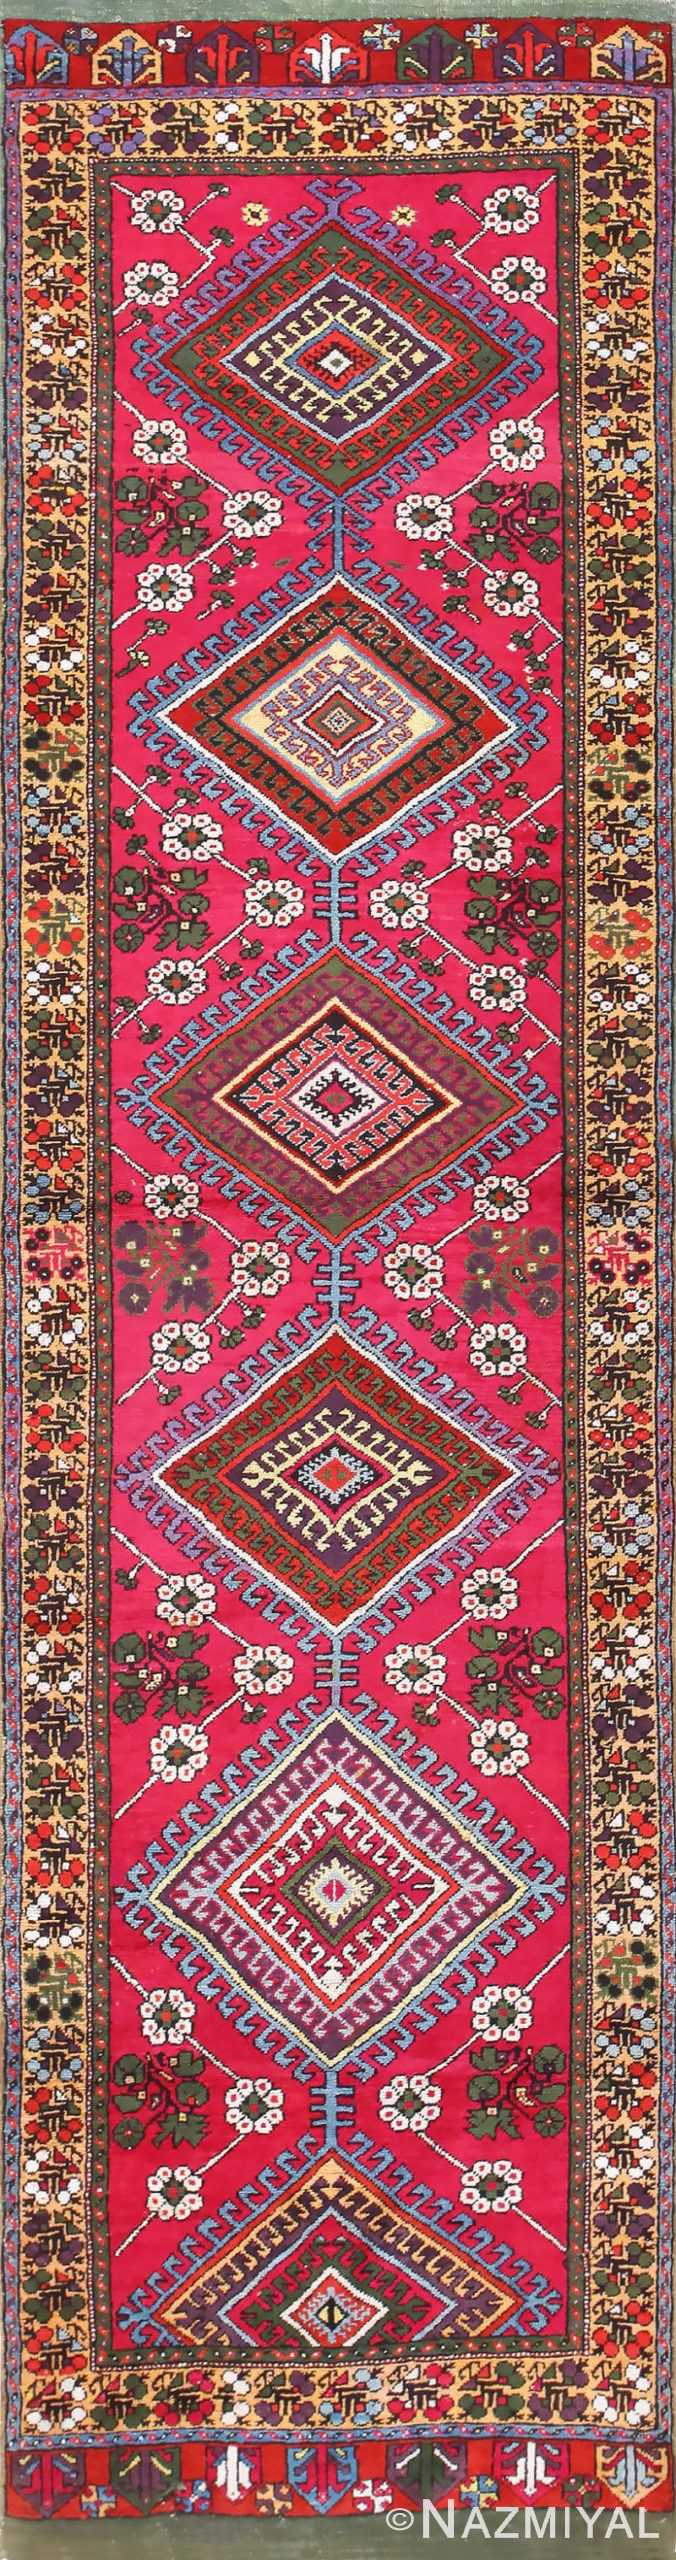 Tribal Antique Turkish Kirshehir Runner Rug 48883 Nazmiyal